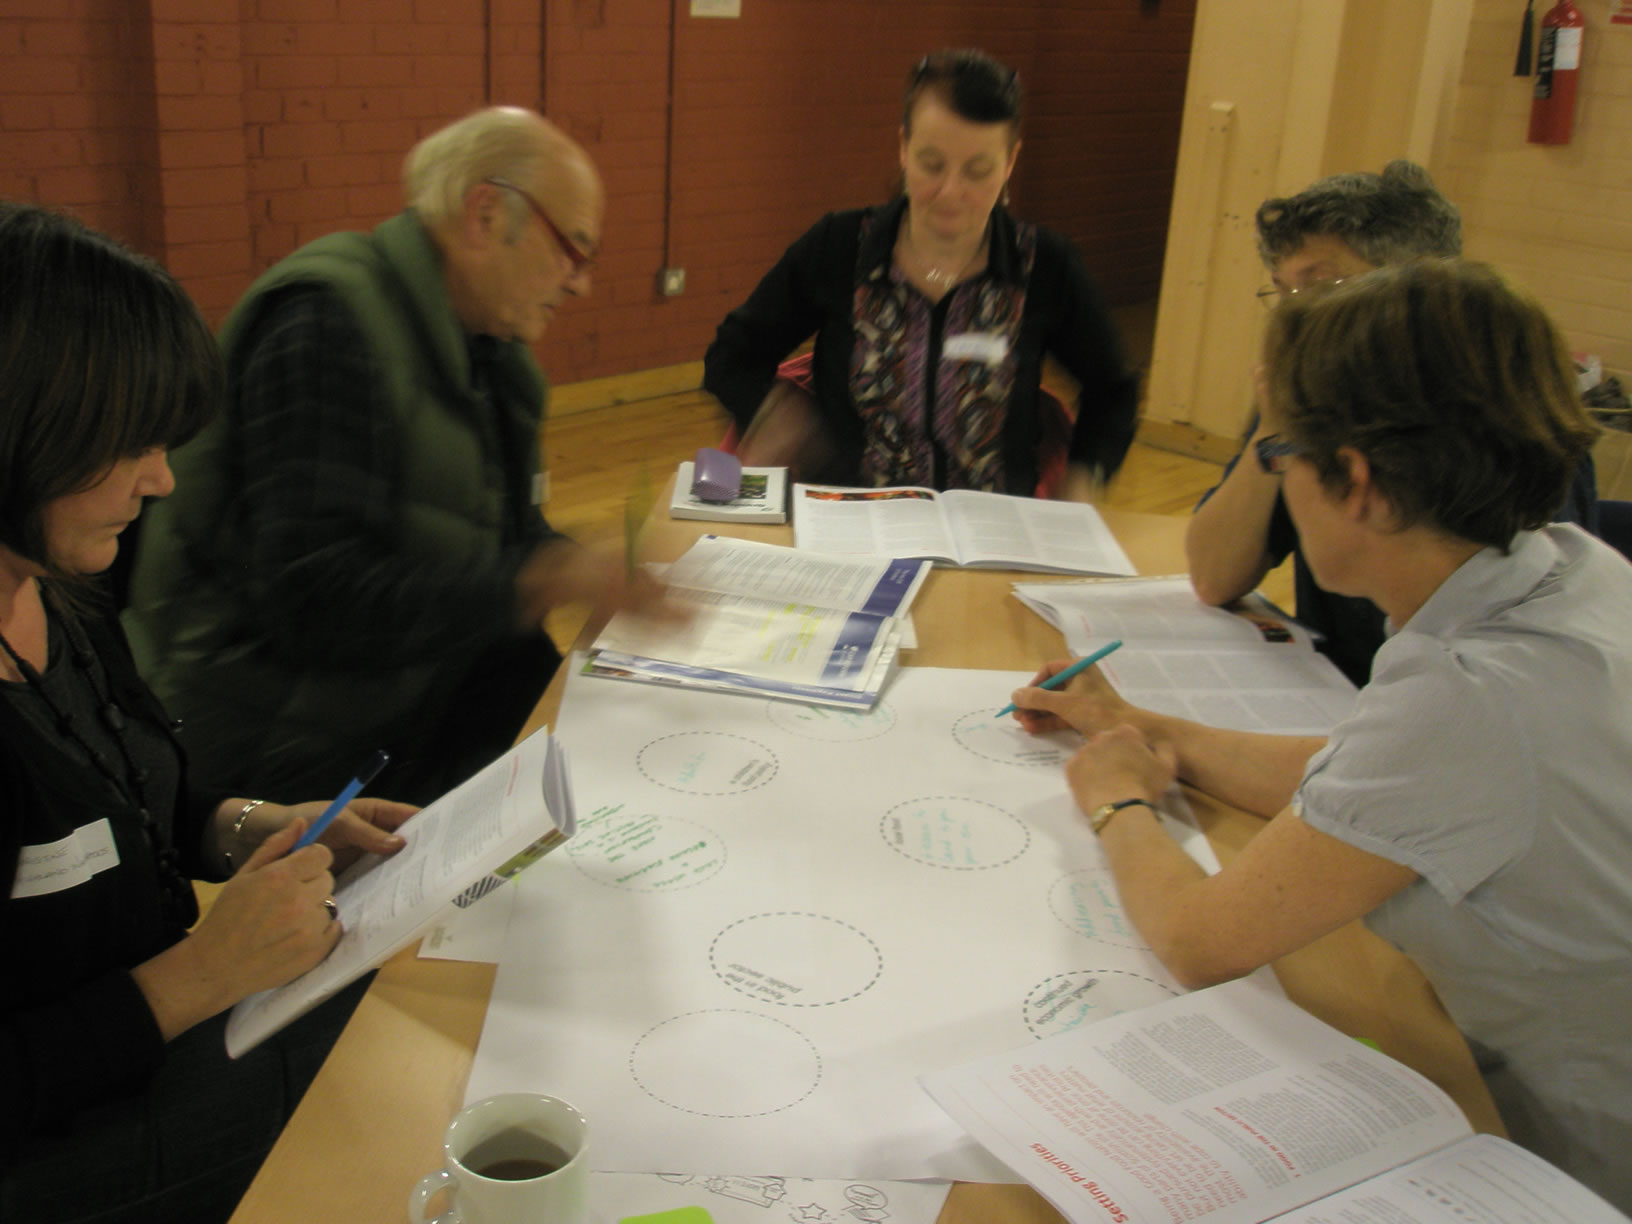 Inverness consultation event 146